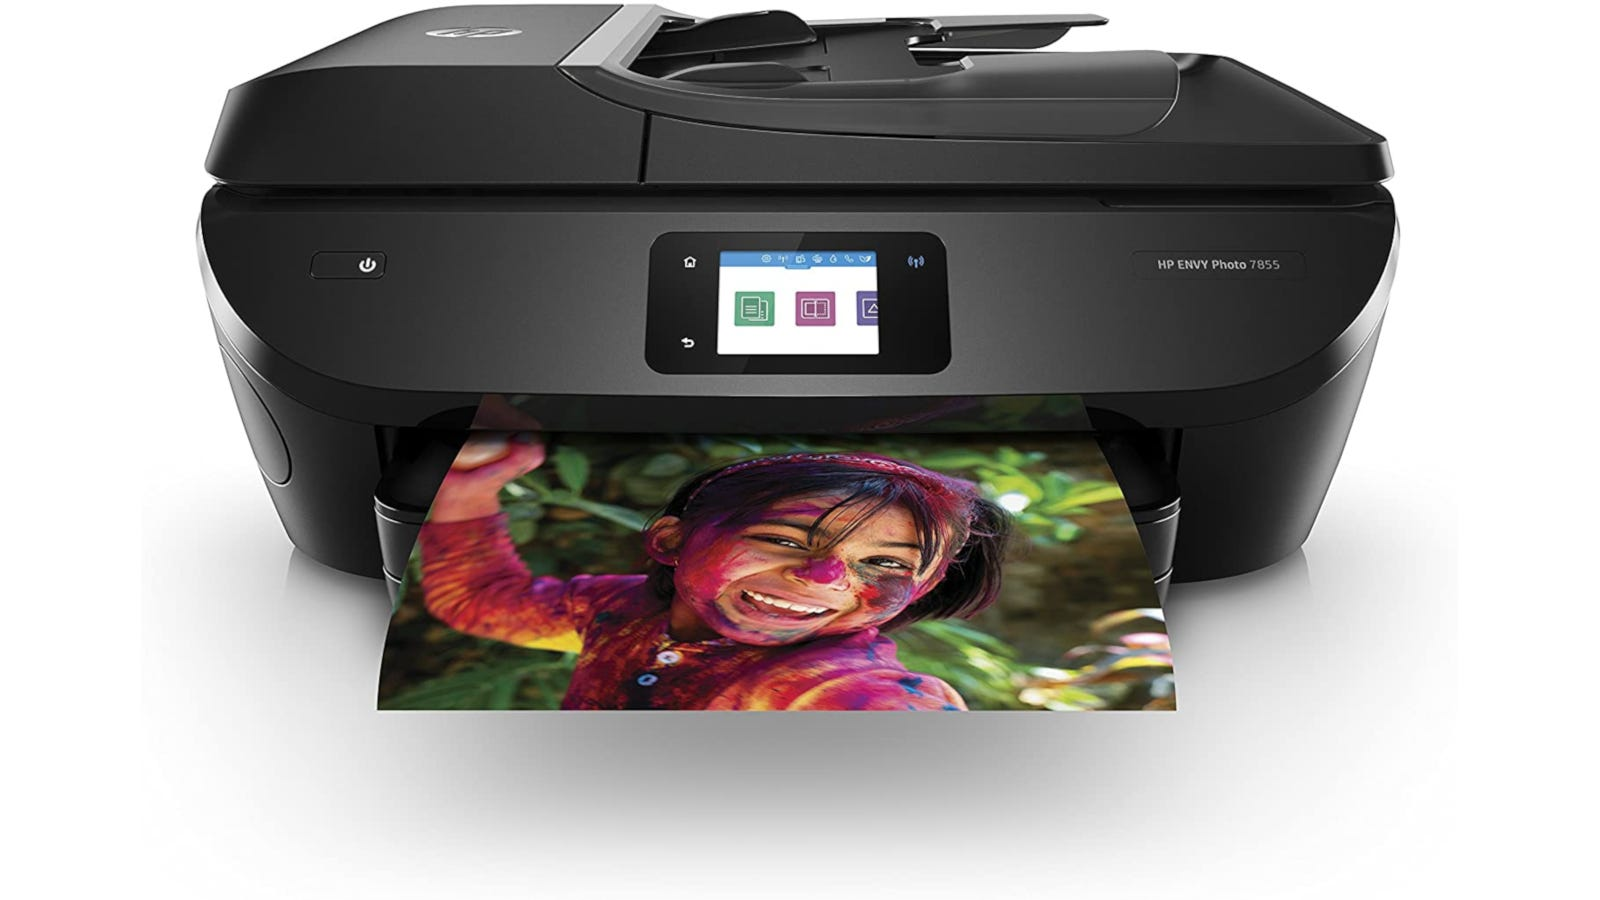 Large black photo printer with wireless printing, SD card slot, and auto document feeder